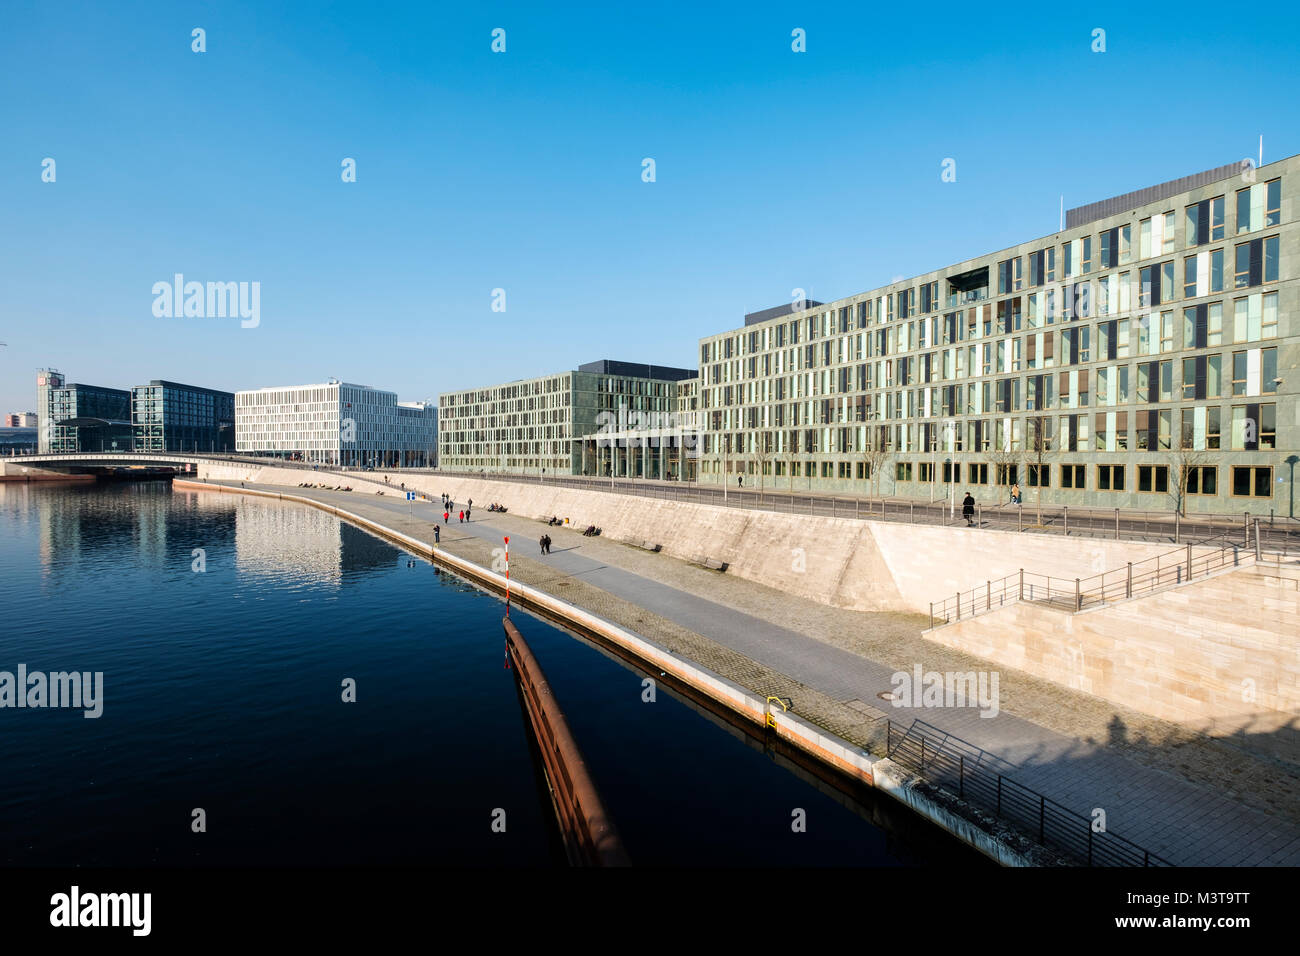 View of Federal Ministry of Education and Research (Bundesministerium fŸr Bildung und Forschung) on Kapelle Ufer - Stock Image